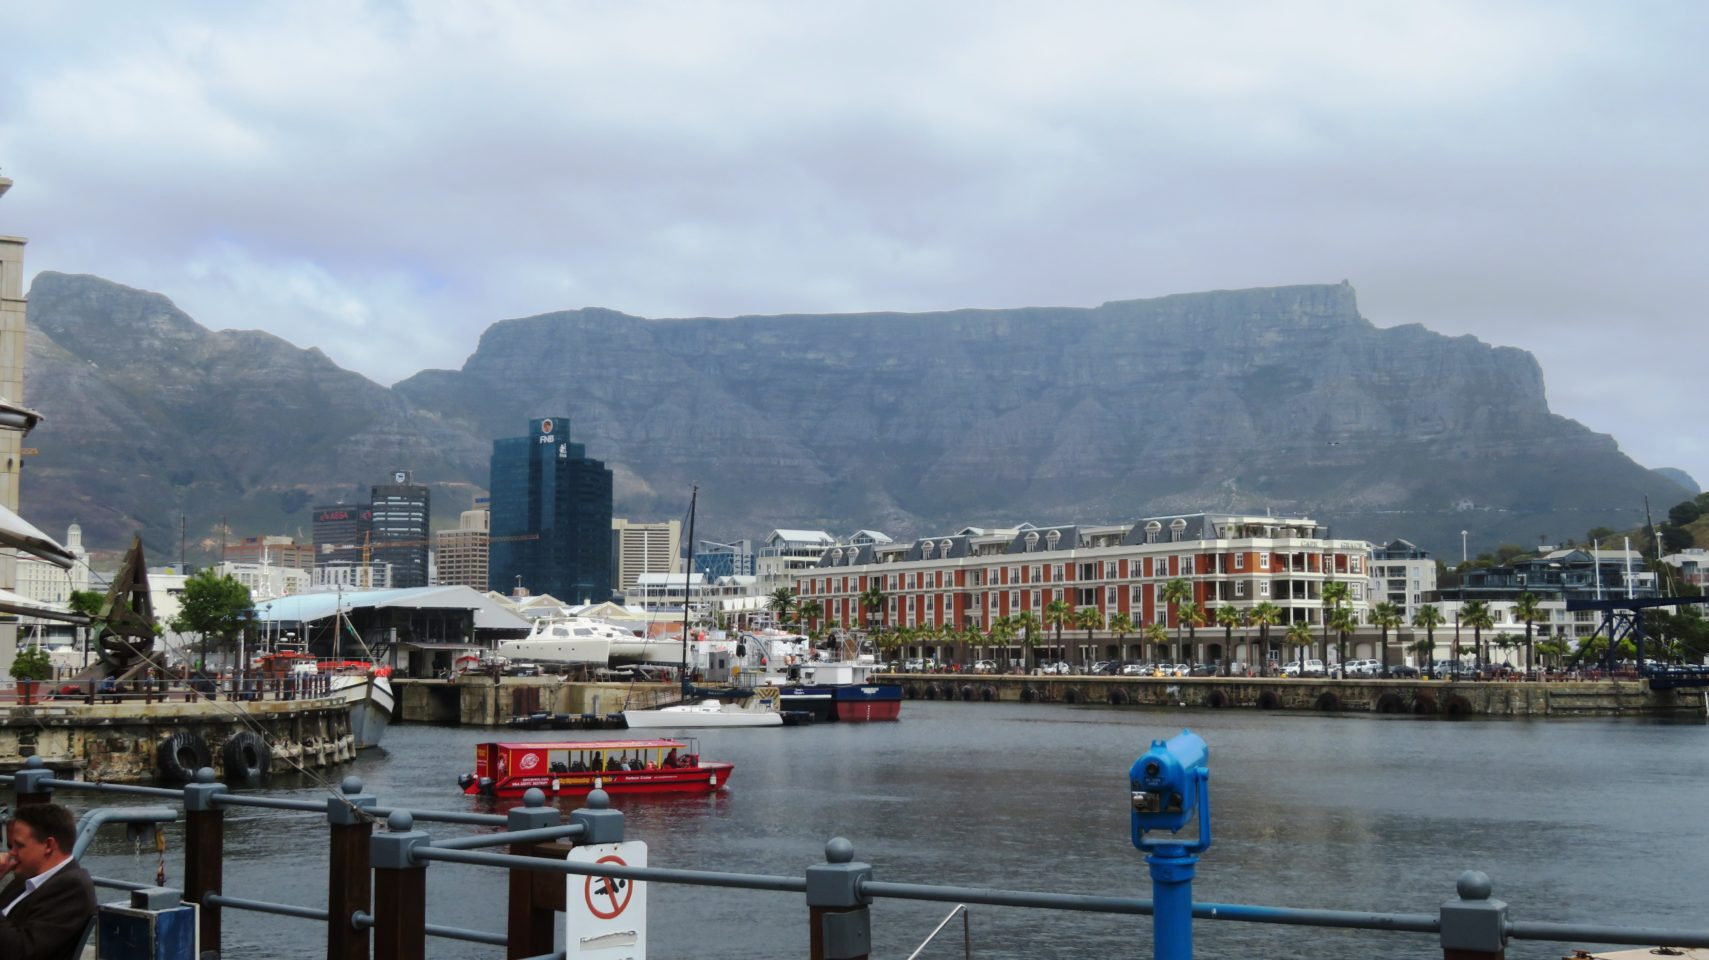 Cape Grace Hotel on the V&A Waterfront in Cape Town, South Africa